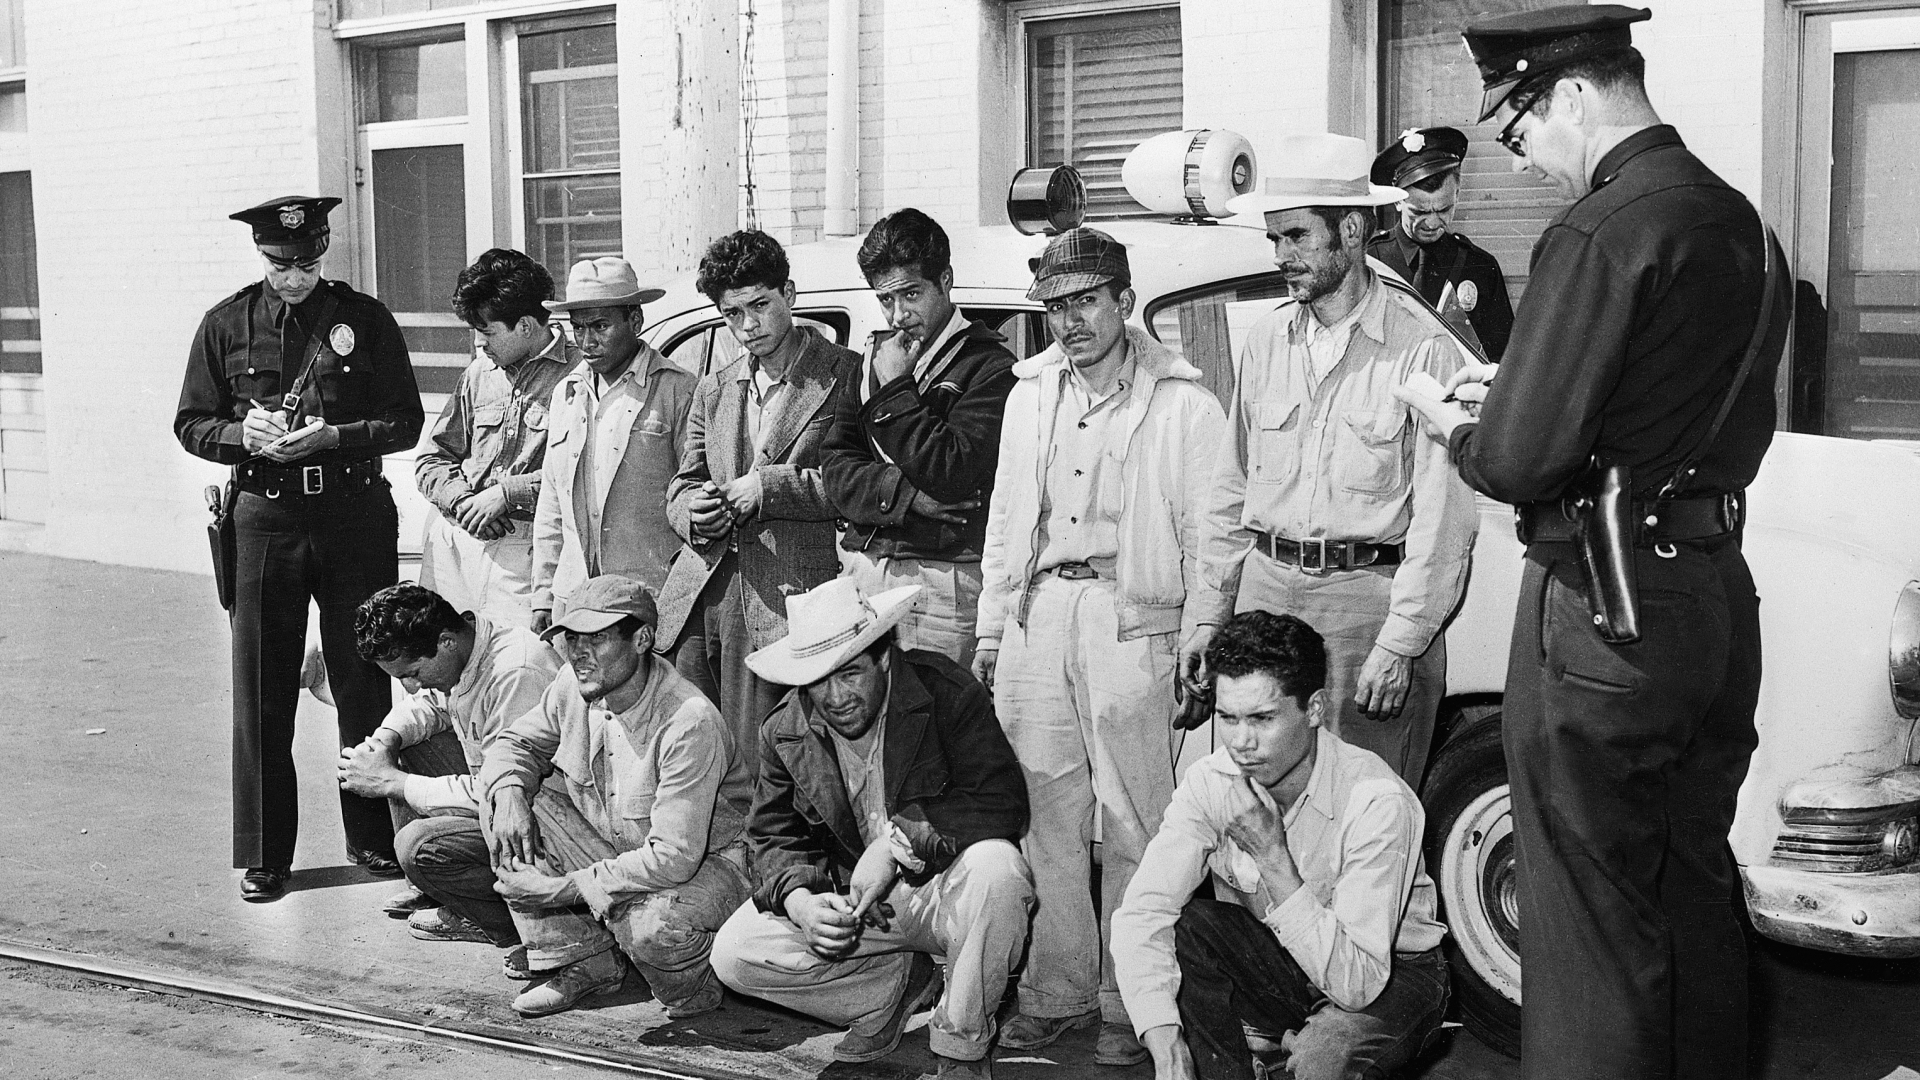 A group of Mexicans who were taken off freight trains in Los Angeles, after two days without food or water, in 1953. (Credit: Getty Images)